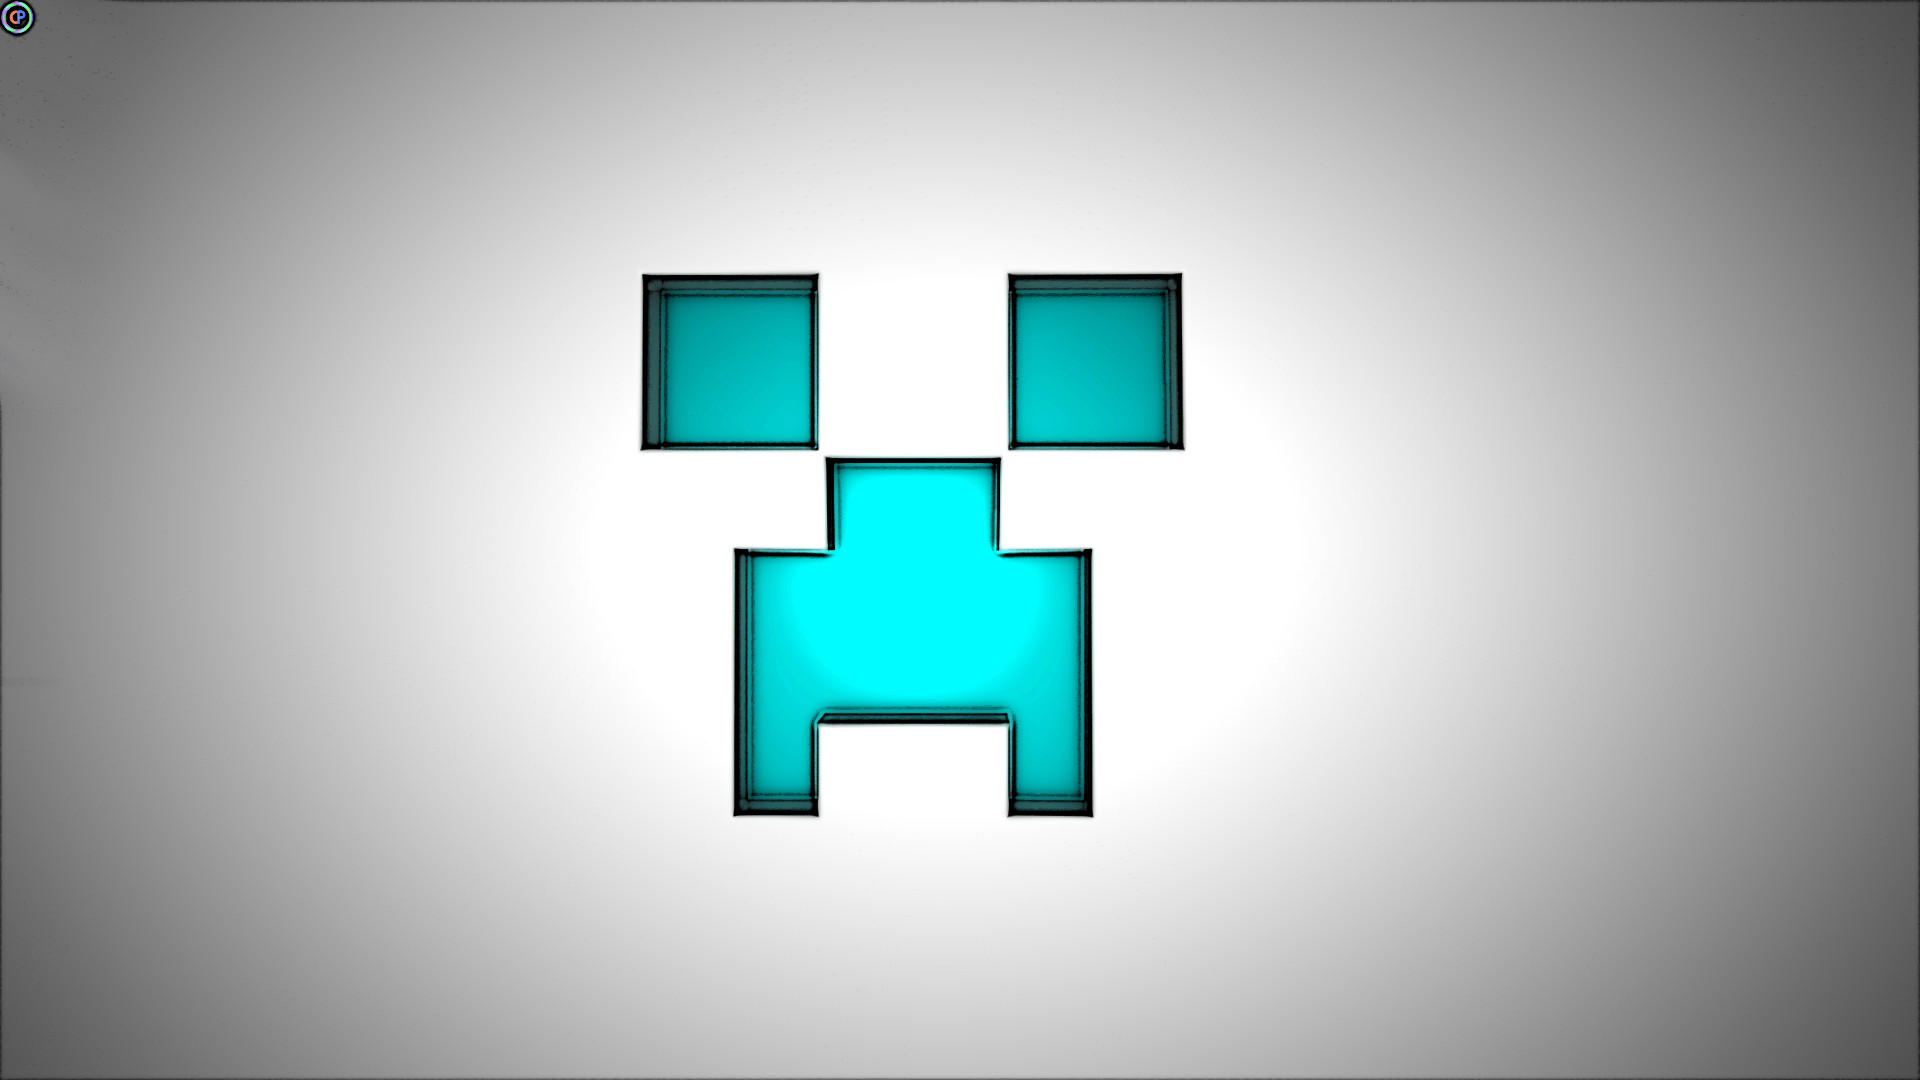 1920x1200 Minecraft Creeper Face Wallpaper 3D